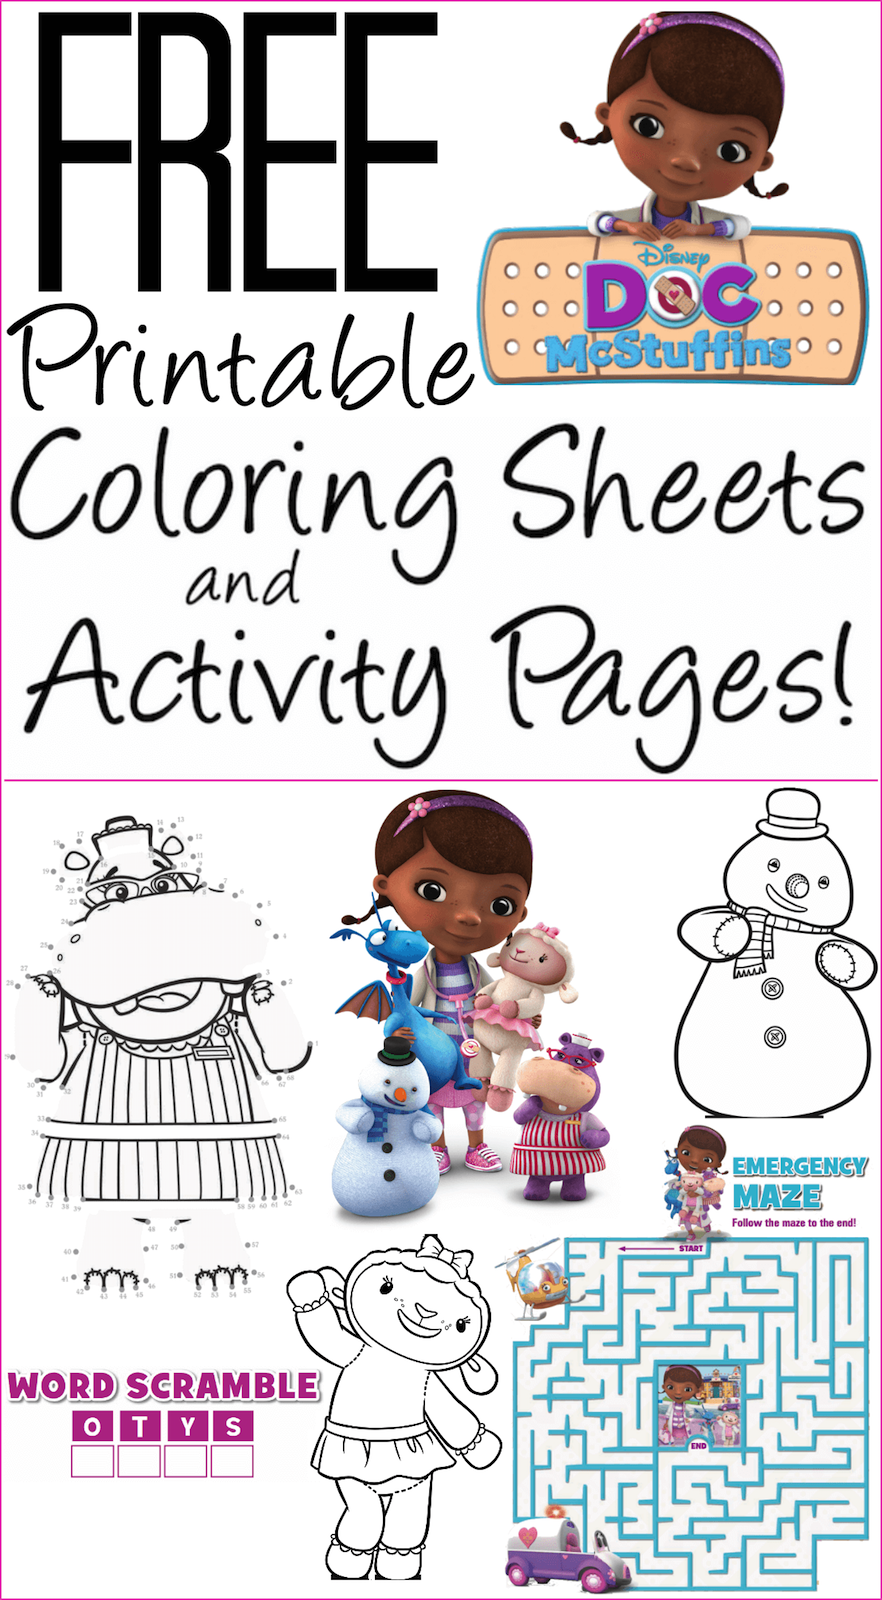 Printable coloring pages dory - Free Doc Mcstuffins Coloring Pages Activity Sheets Print Them Now